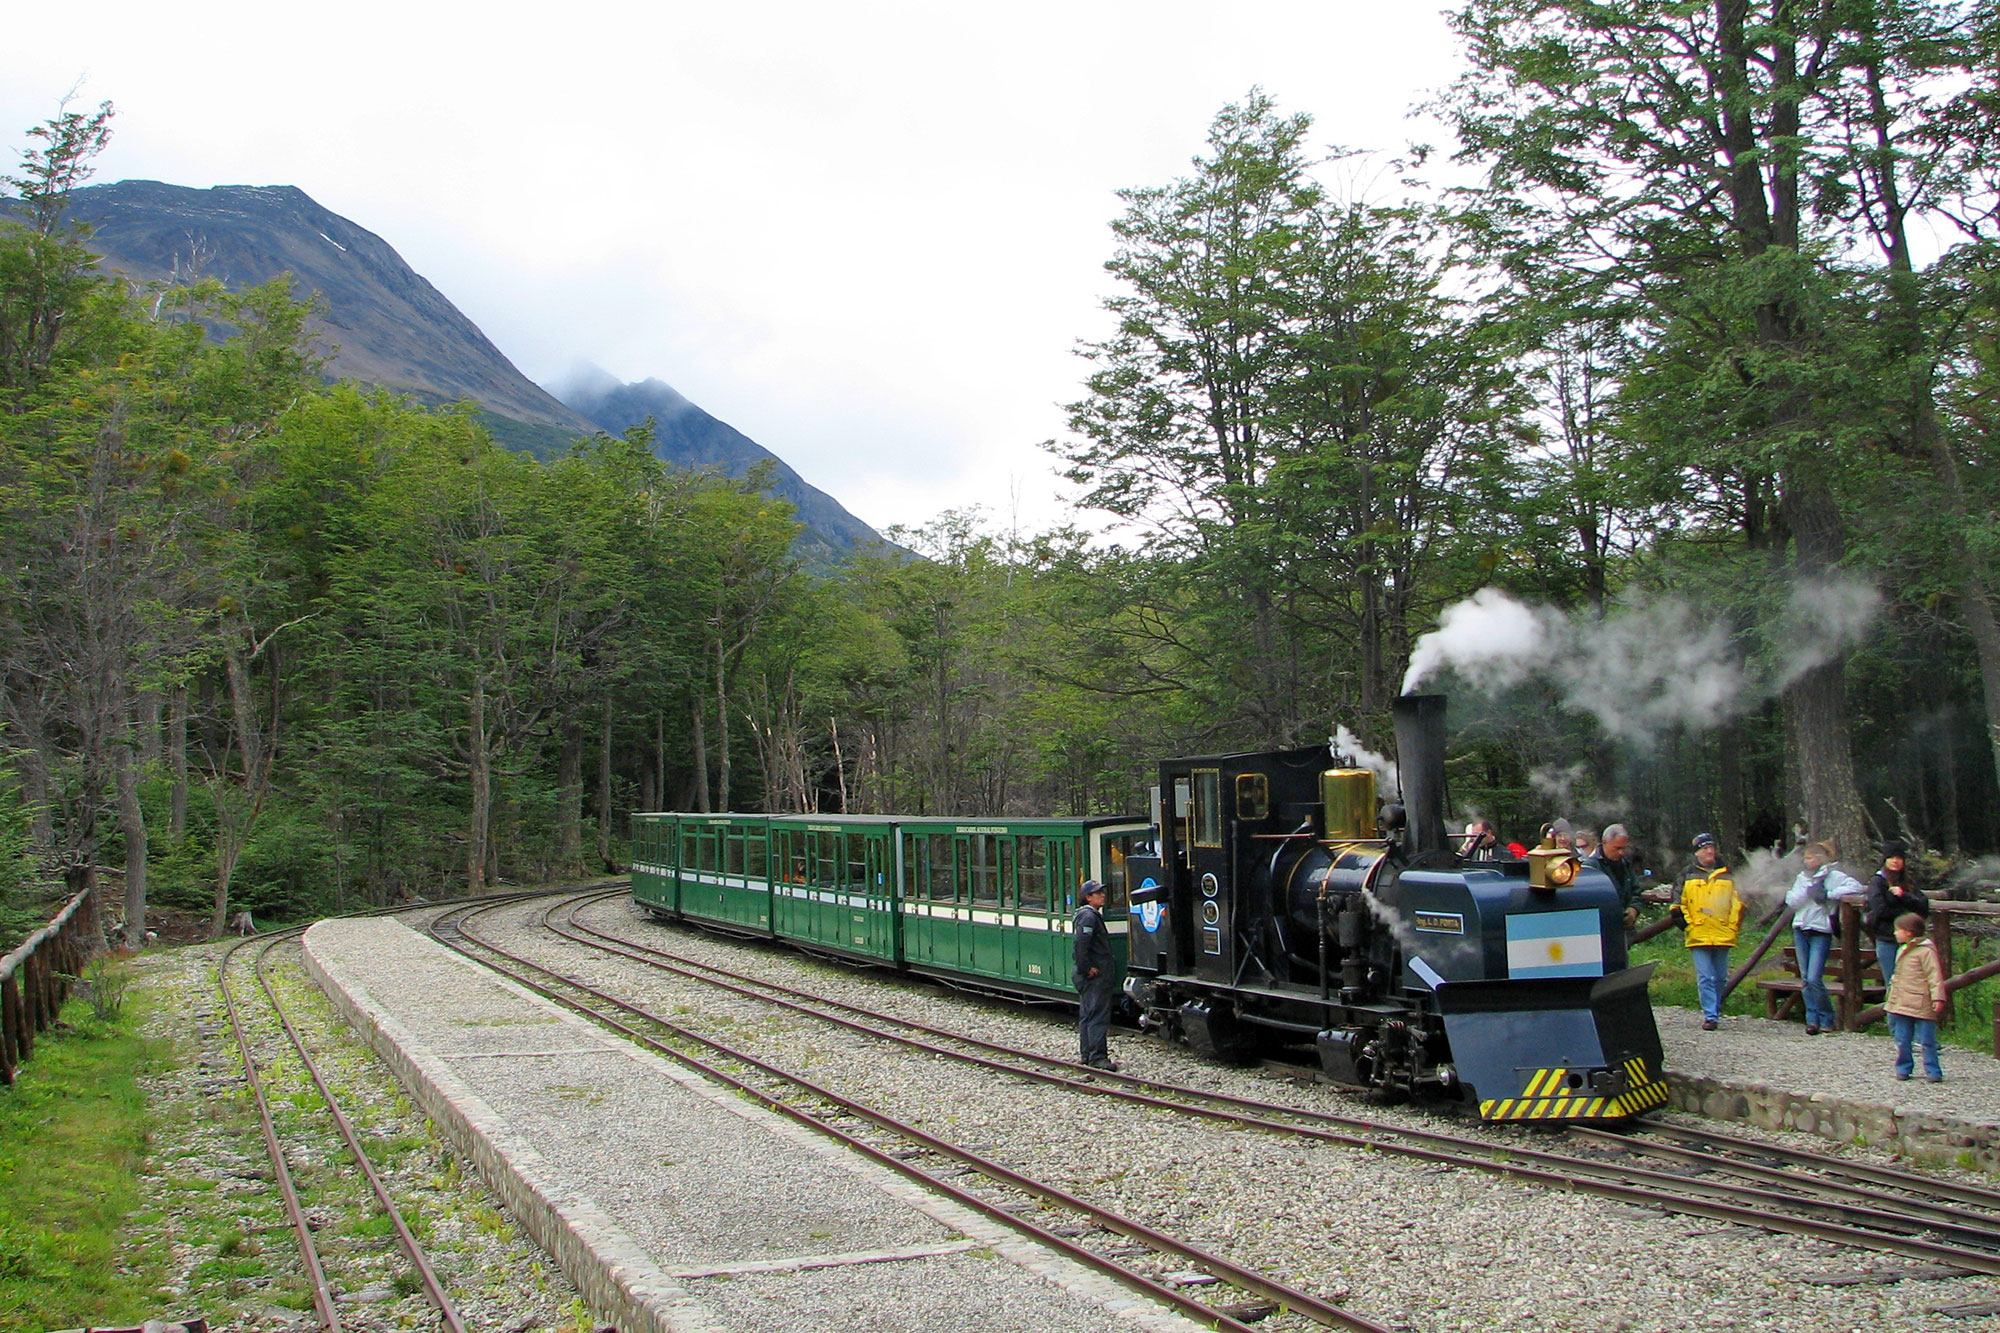 Steam Train on its way to the End of the World in Ushuaia